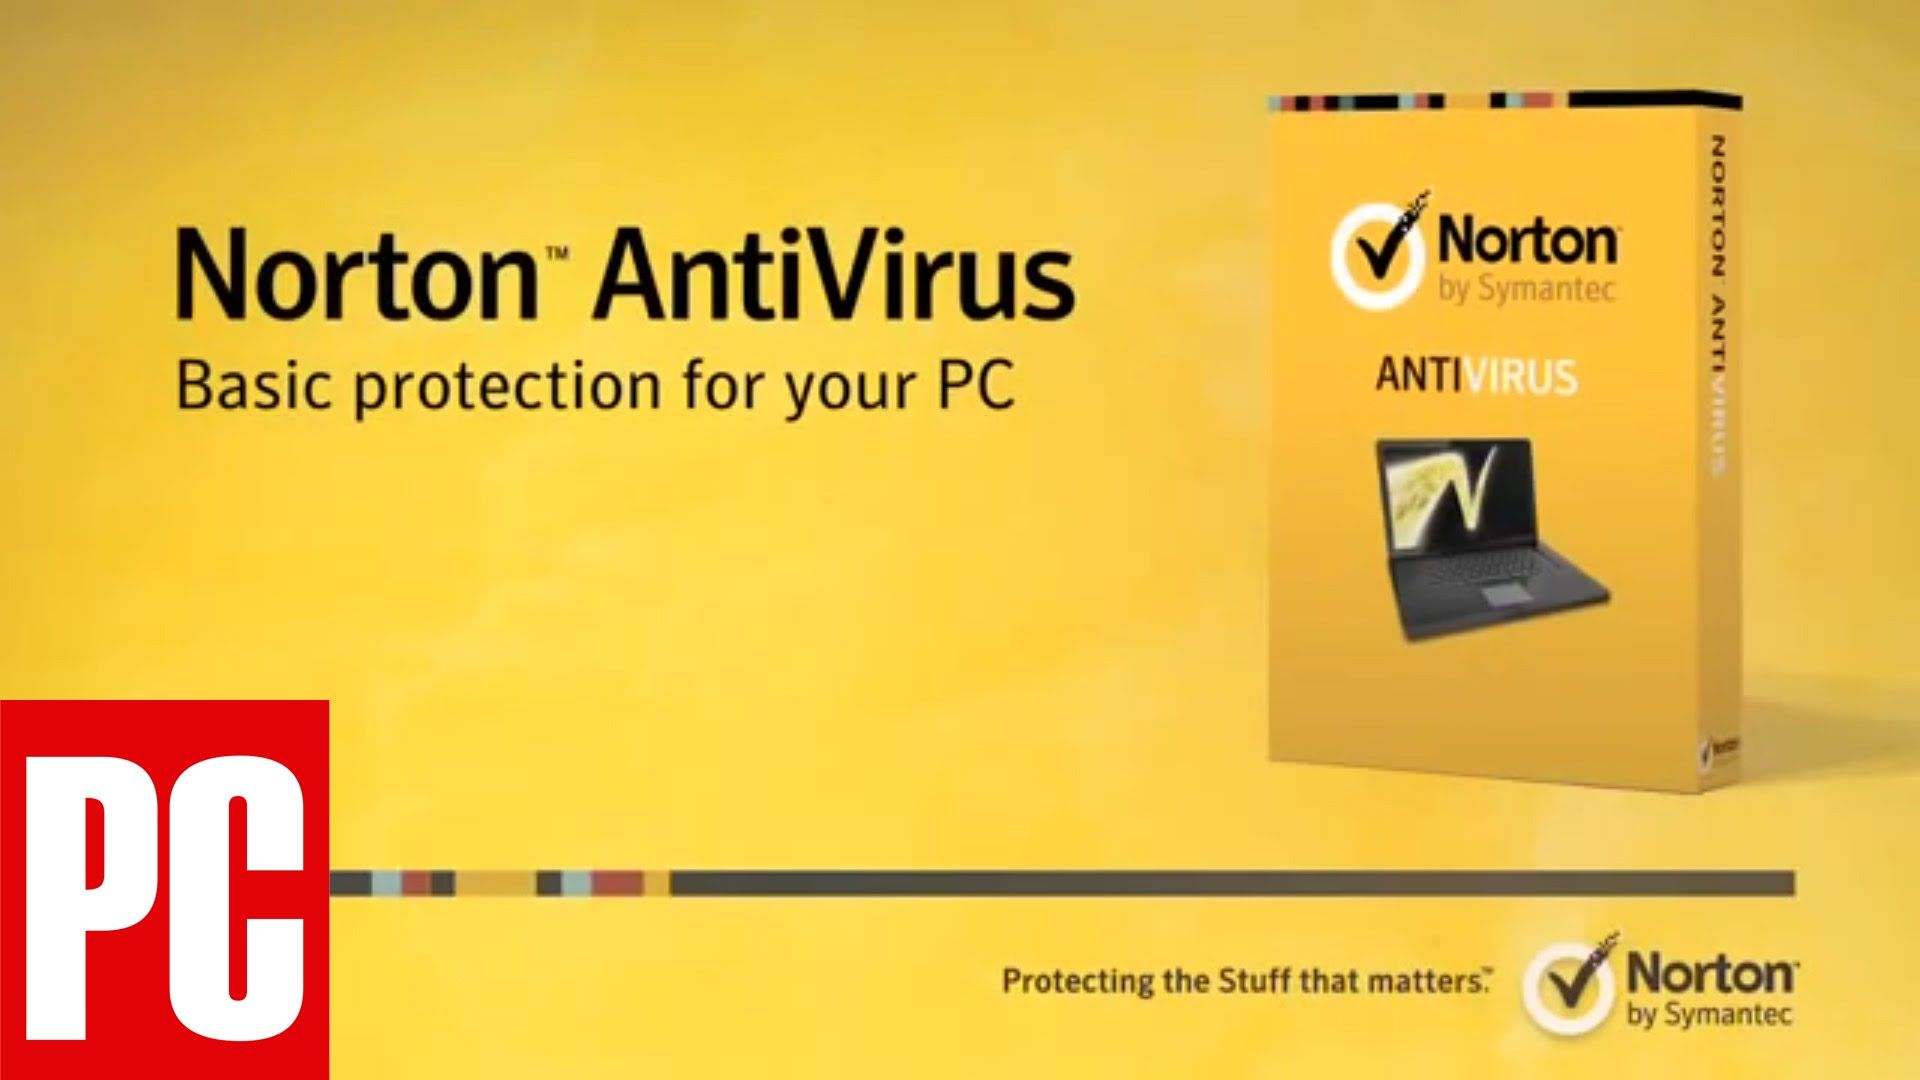 Norton antivirus 22. 19. 8 crack product serial key full version.